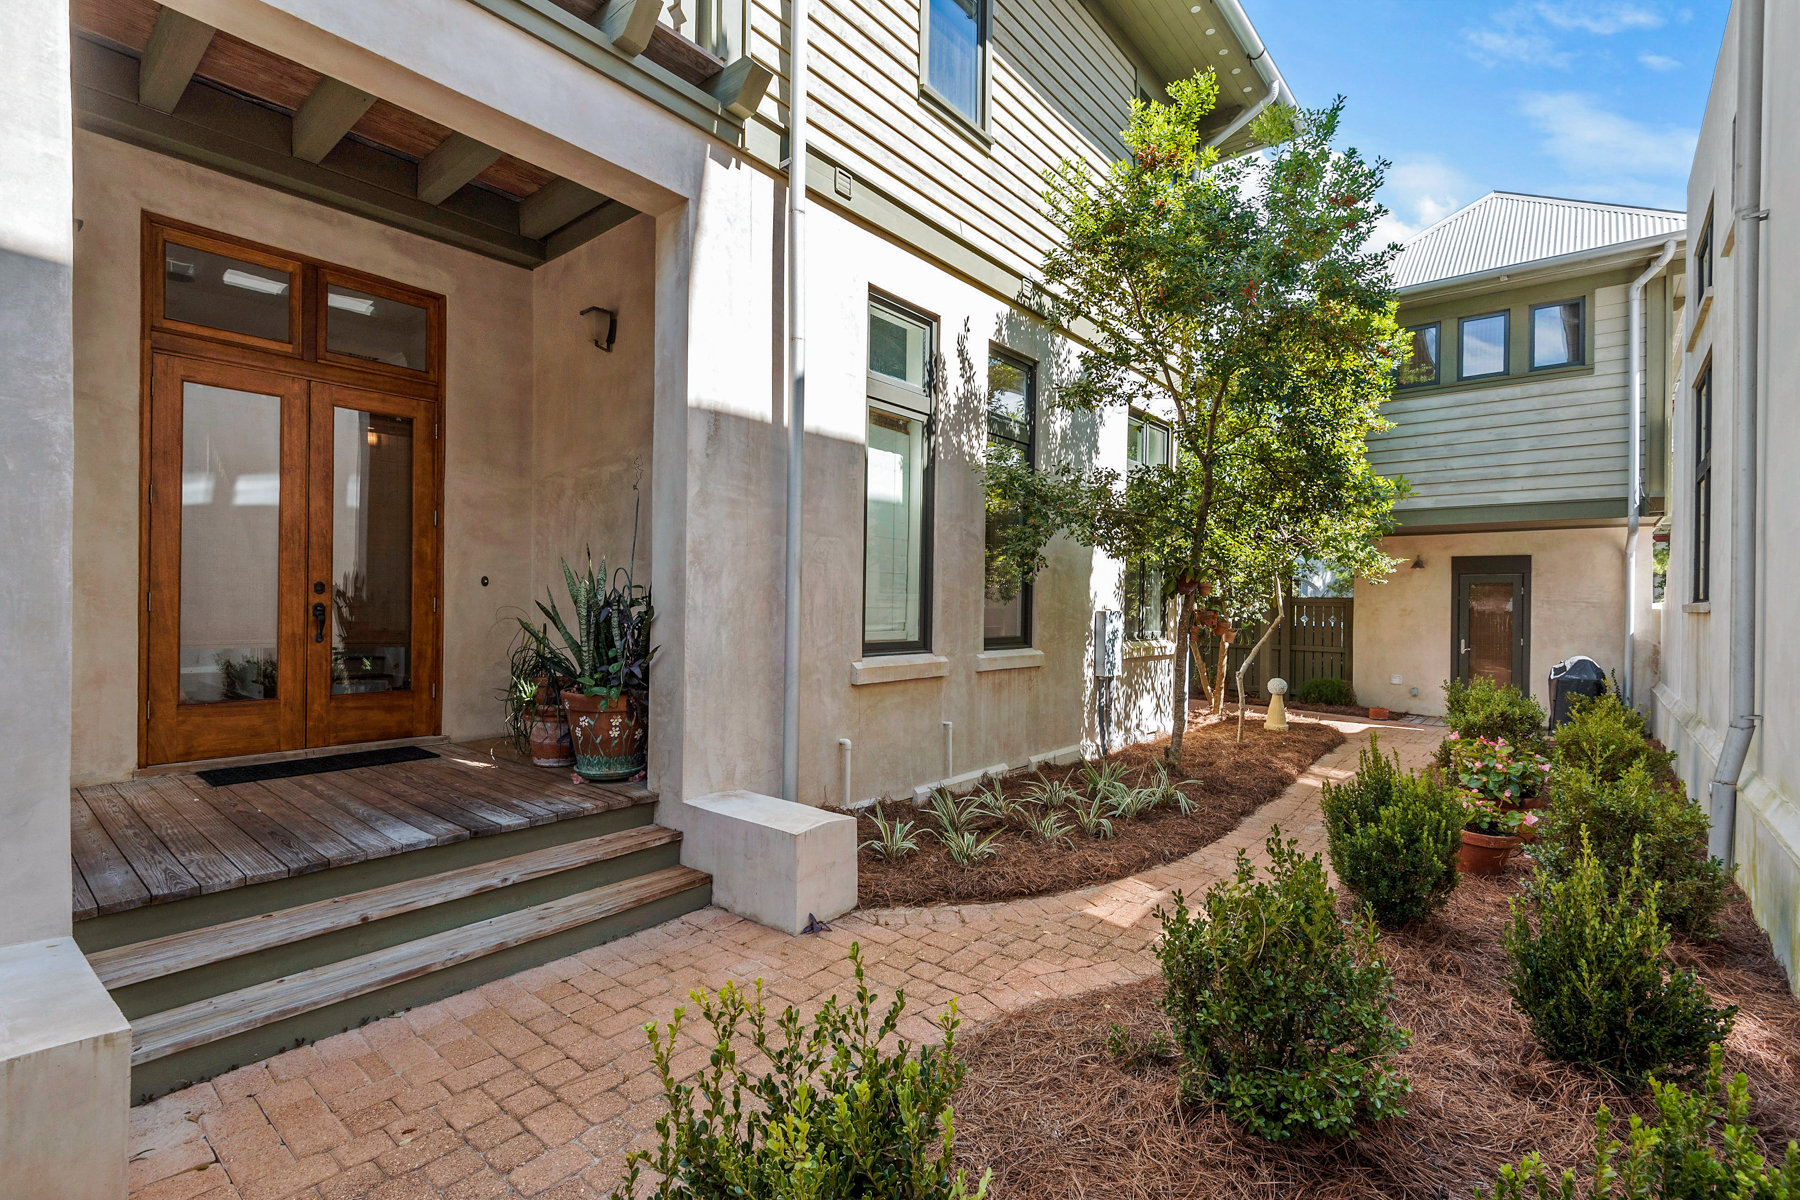 Casa Unifamiliar por un Venta en LIVE THAT FLORIDA LIFESTYLE IN SOUGHT AFTER ROSEMARY BEACH 143 W Water Street Rosemary Beach, Rosemary Beach, Florida, 32461 Estados Unidos